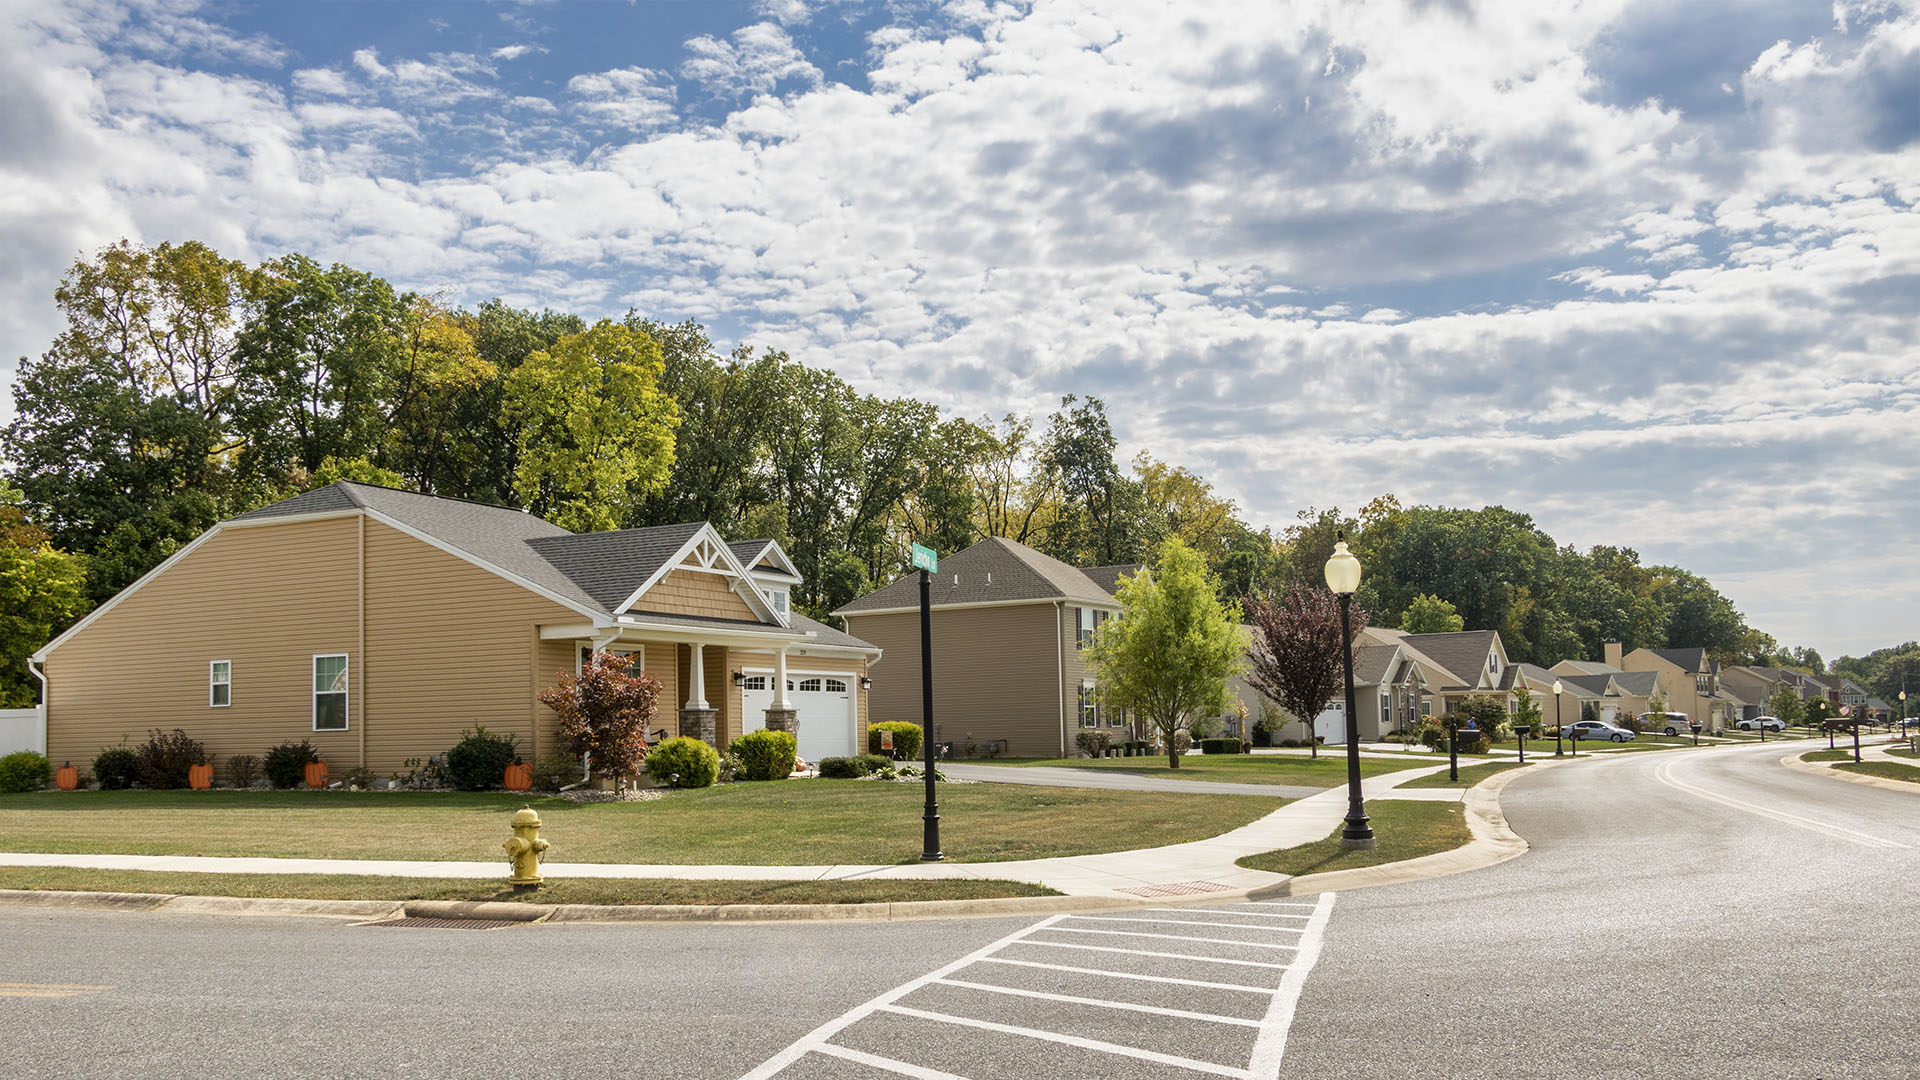 New Shippensburg Homes Now Selling at Deerfield by S&A Homes